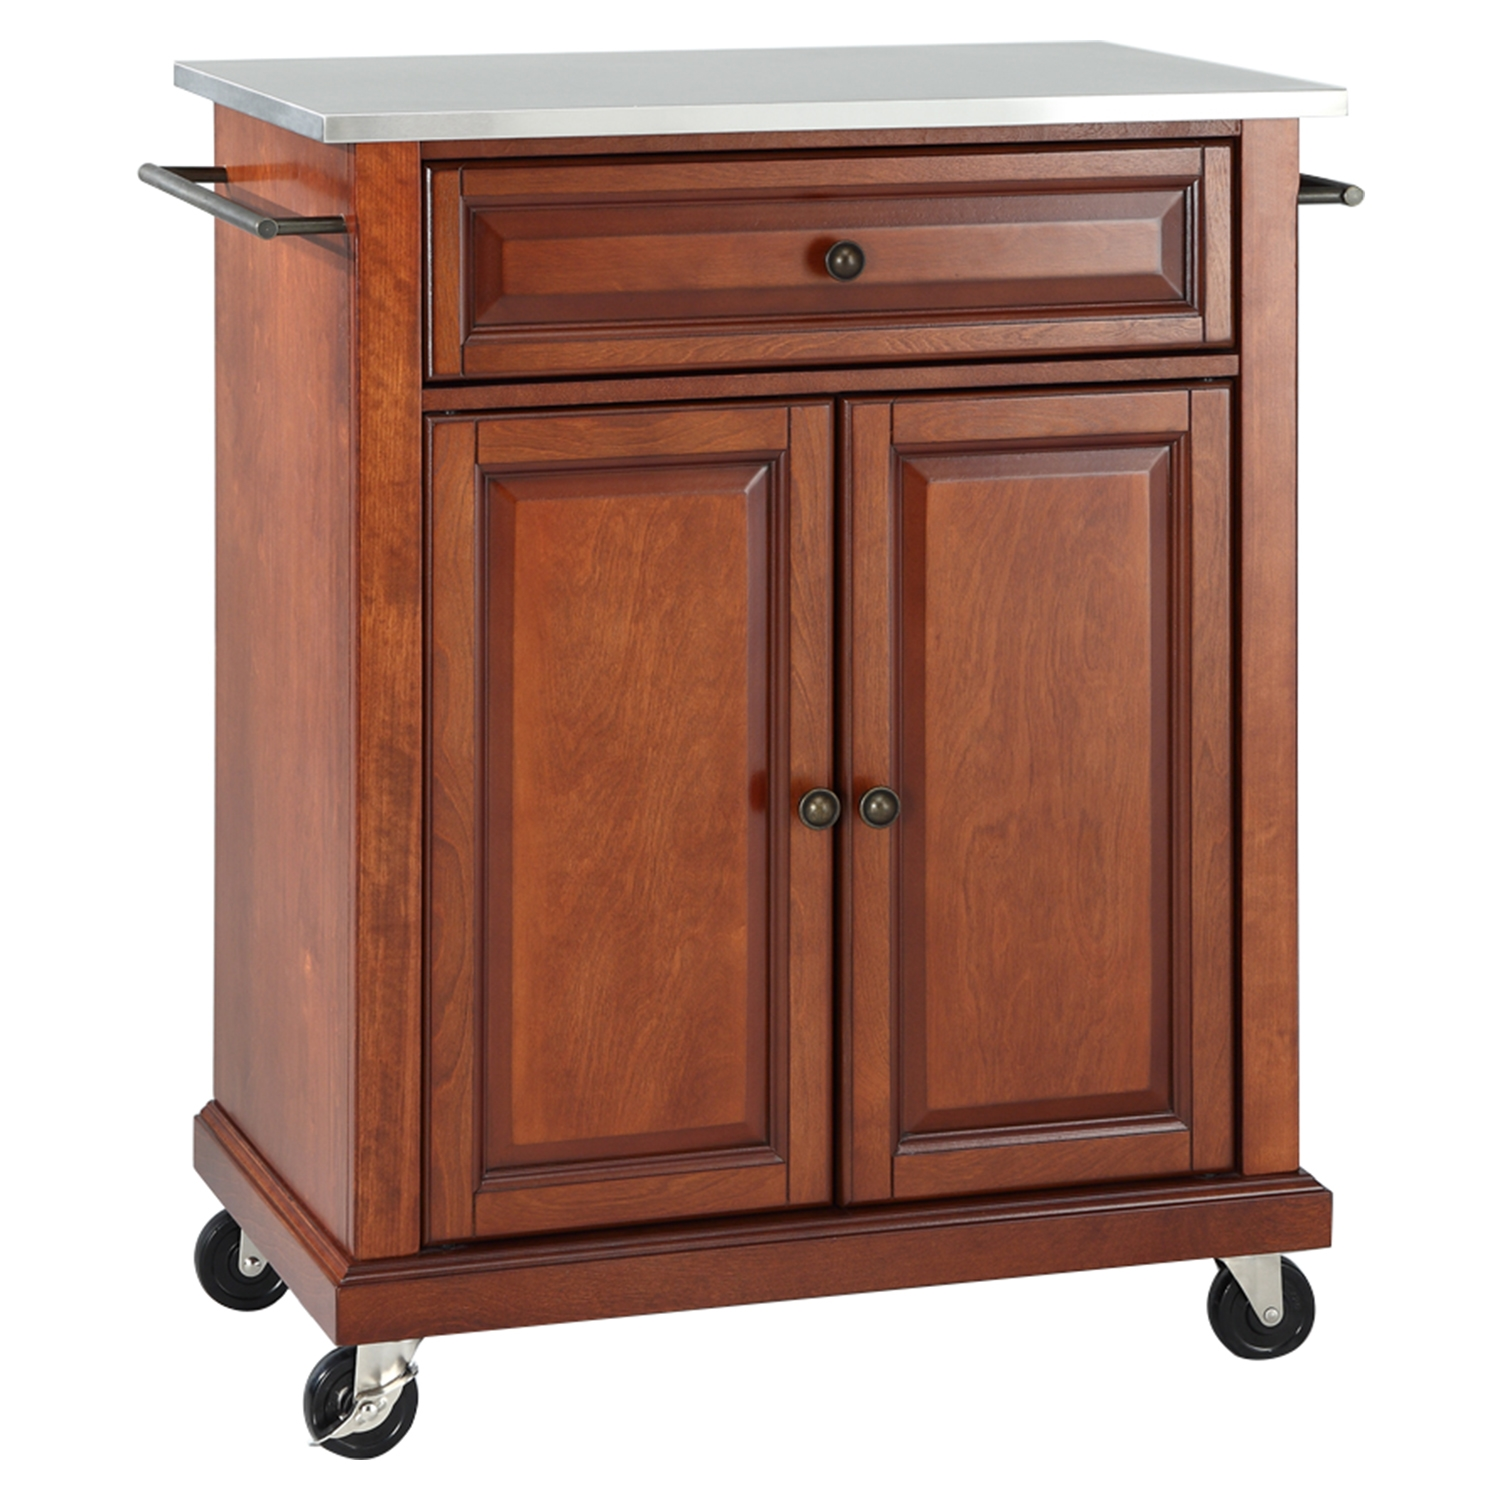 stainless steel top portable kitchen cart island casters